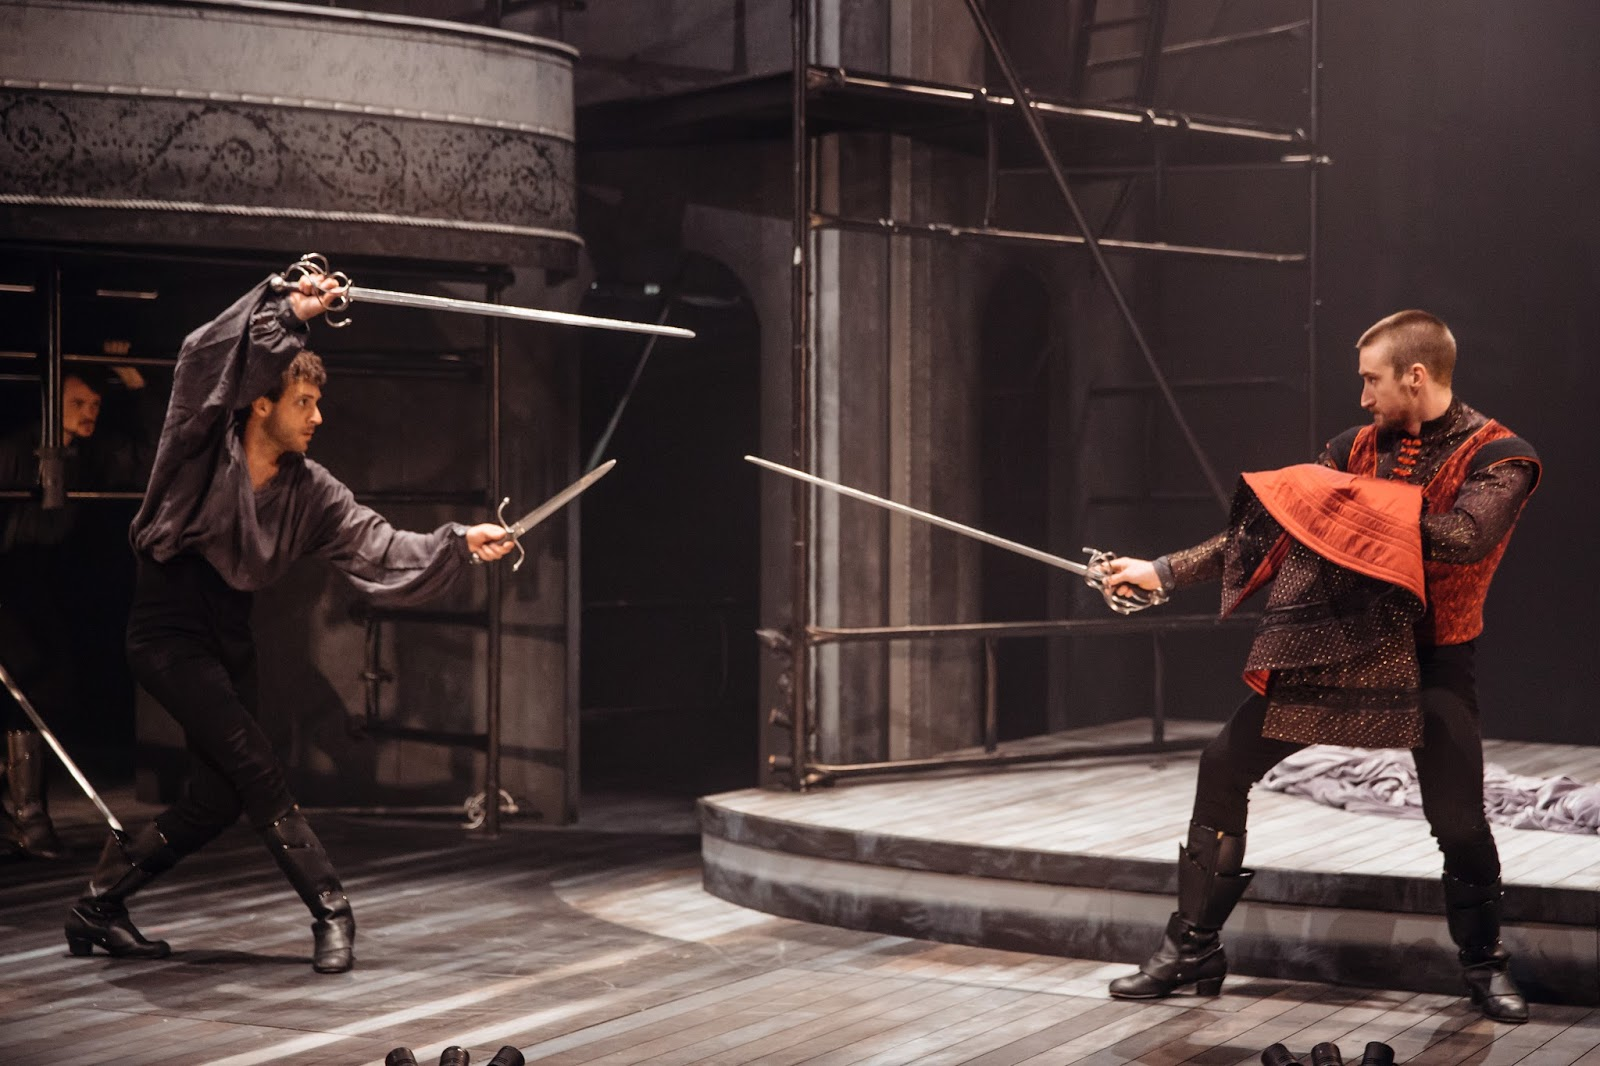 romeo and juliet stage directing Fifty shades of shakespeare  melissa mcnamara - devisor, actor, movement  director  using an equal blend of shakespeare's text and devised movement,.